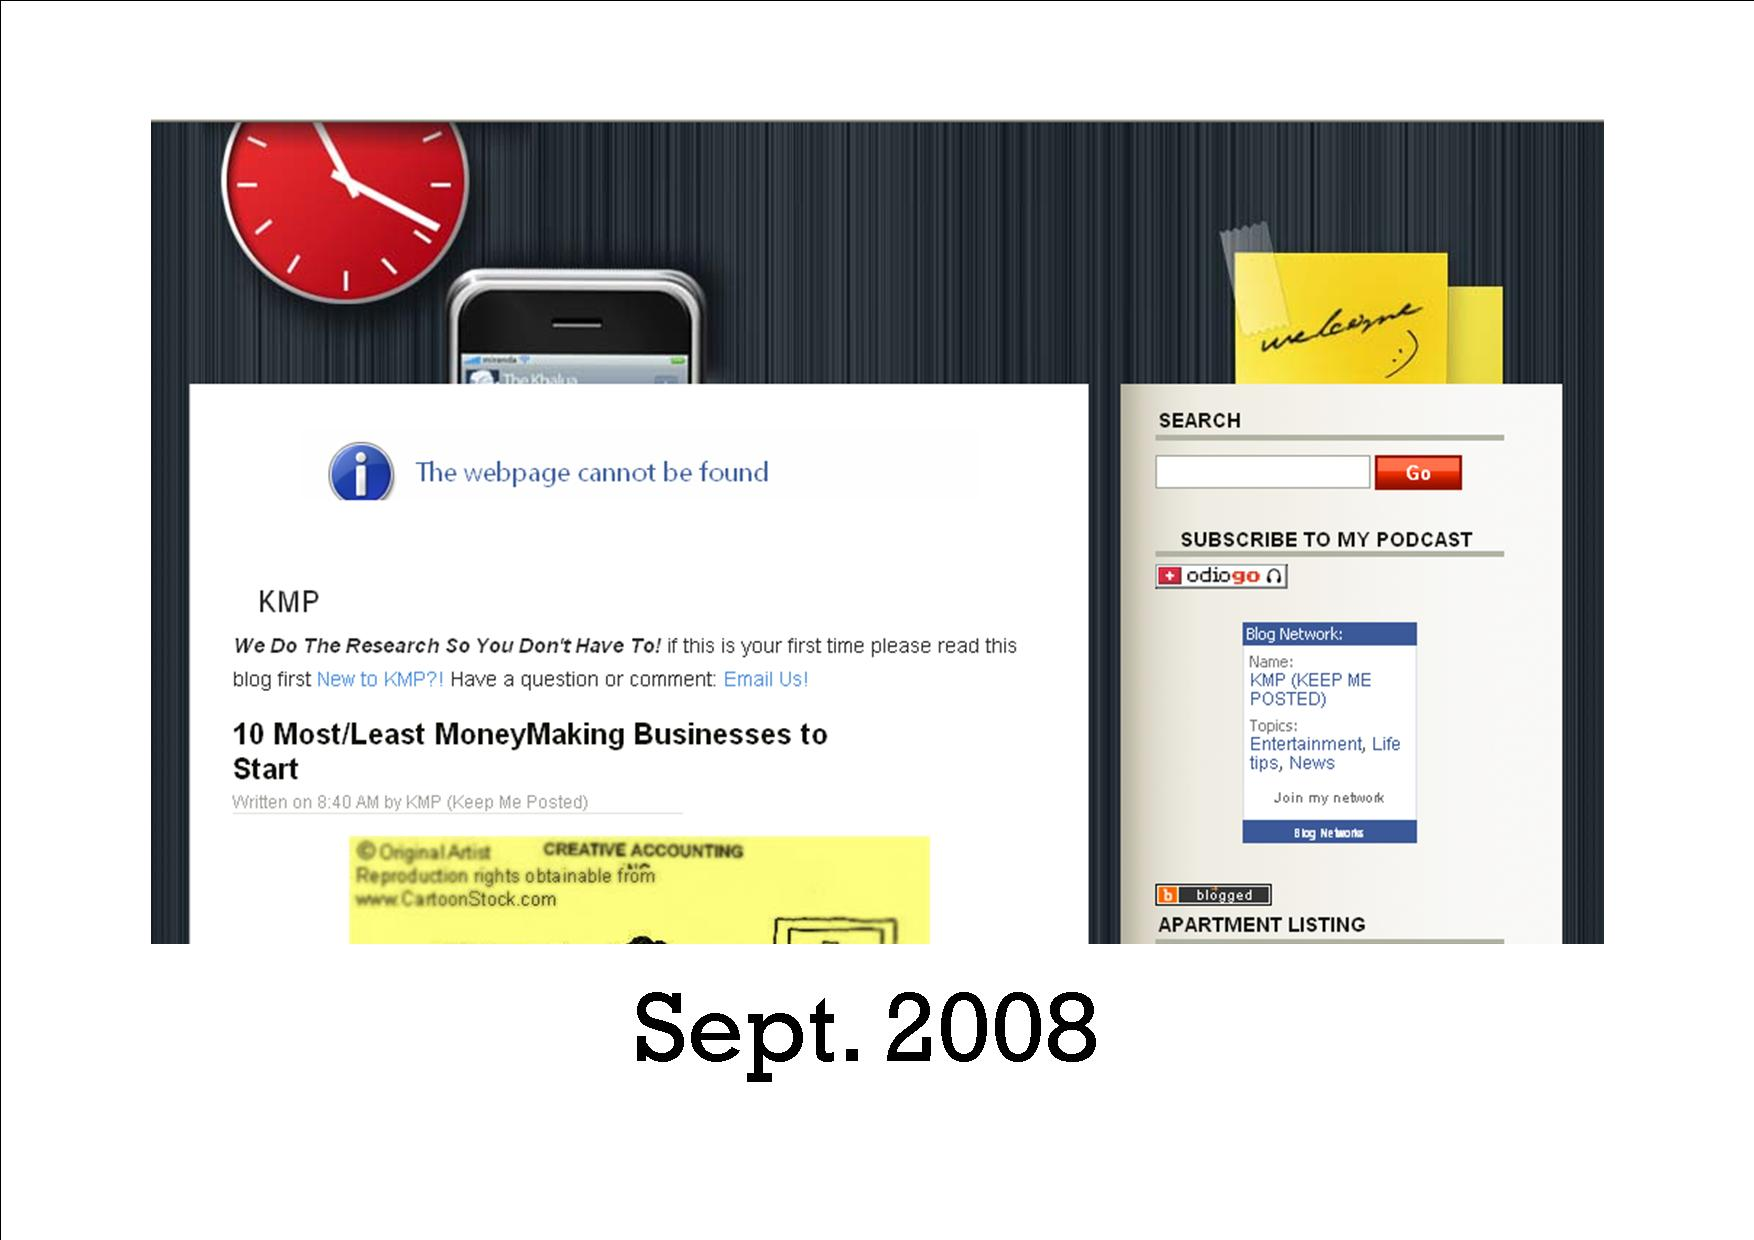 KMP Blog Redesigned – A Look Over The Years